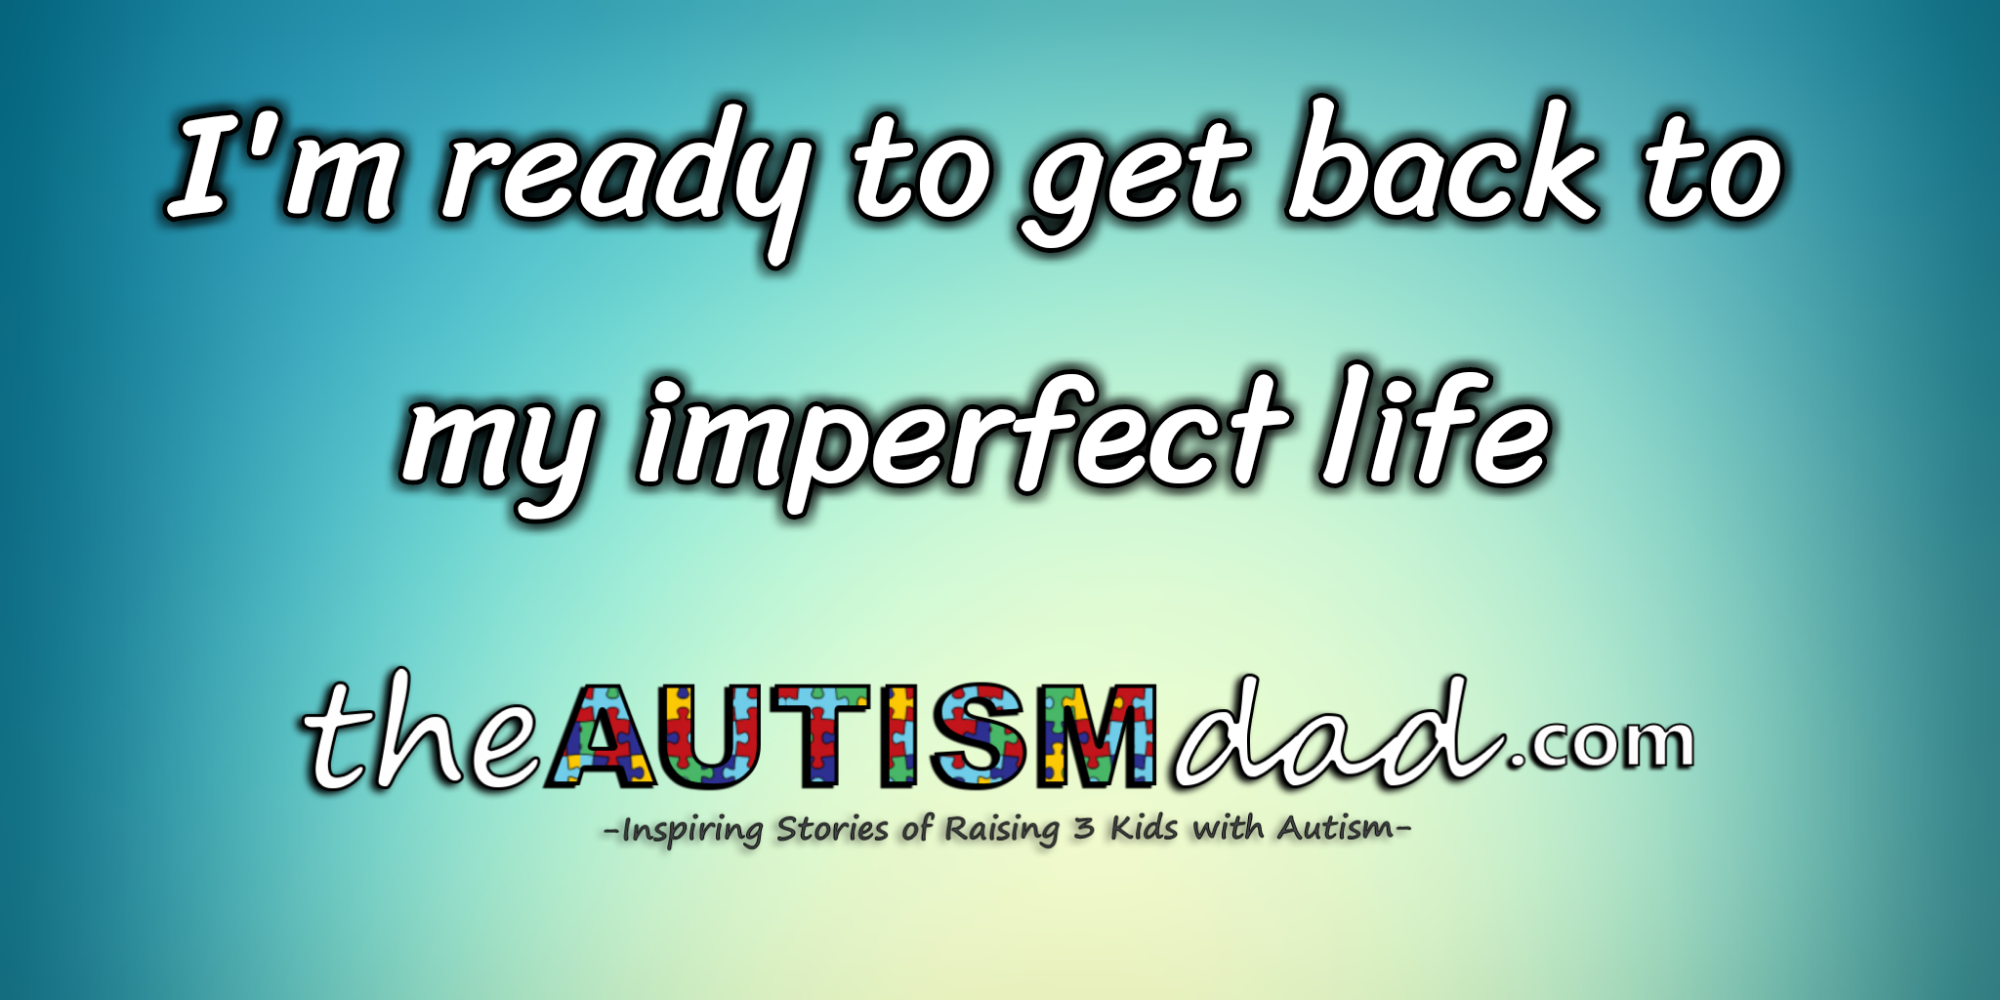 I'm ready to get back to my imperfect life